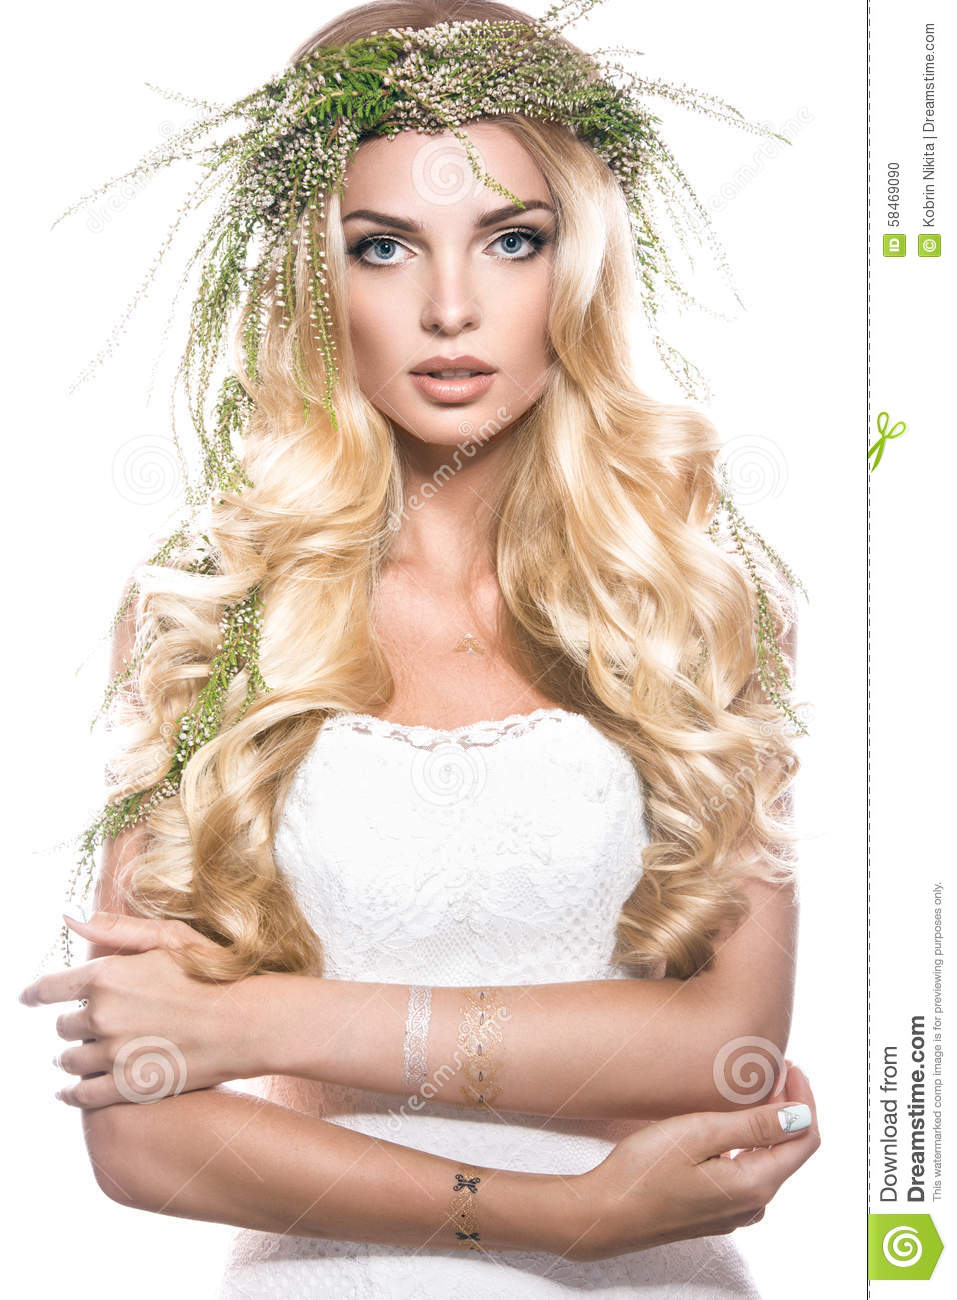 Portrait of a beautiful girl with flowers on her stock photo image portrait of a beautiful girl with flowers on her izmirmasajfo